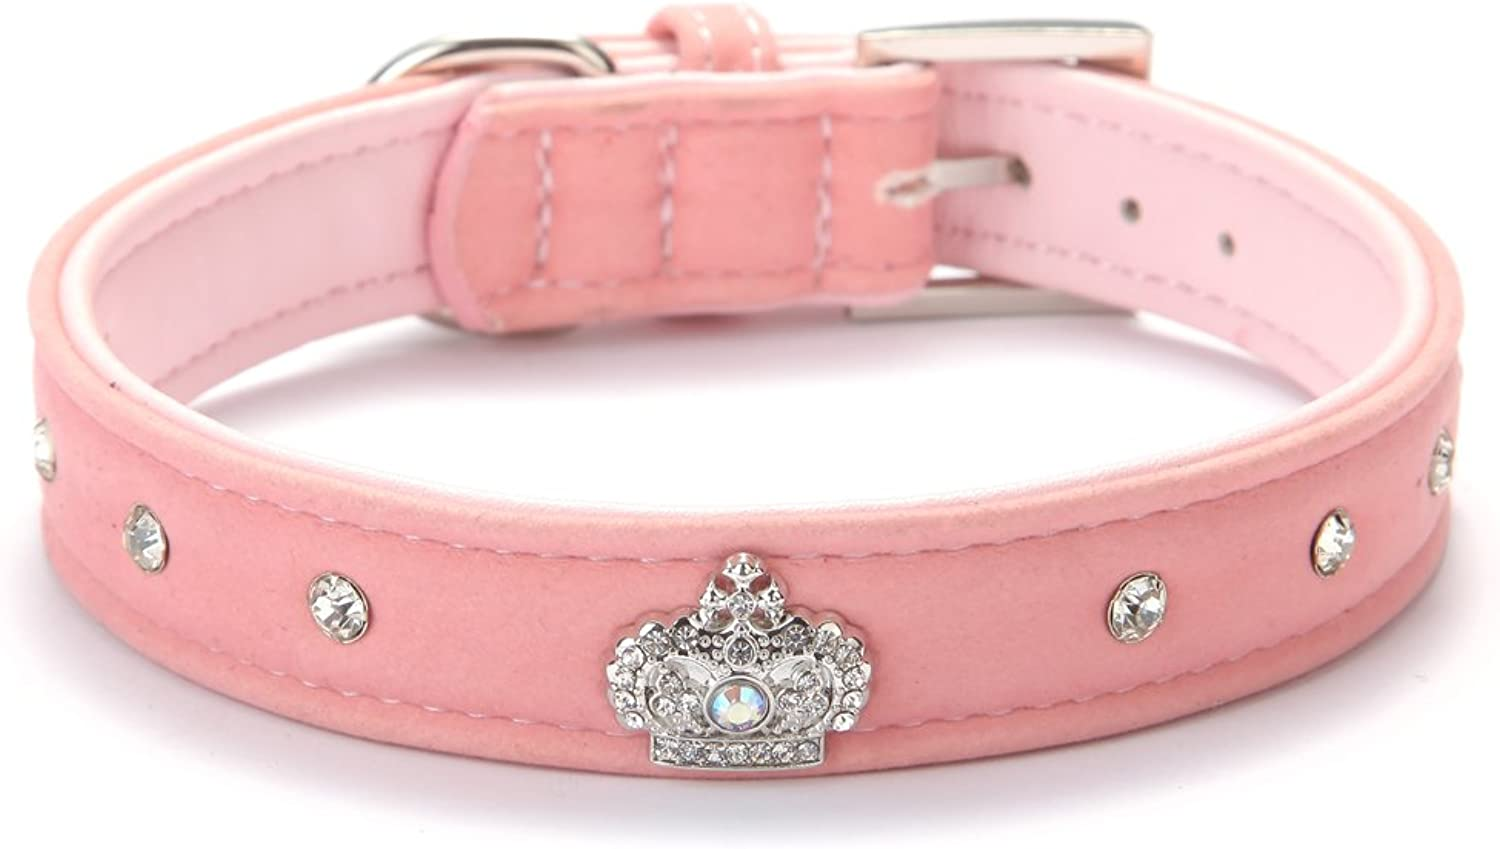 BINGPET BA2022X Cute Designer Rhinestone Dog Collars with Diamond Crown for Puppy Pet  Pink Small